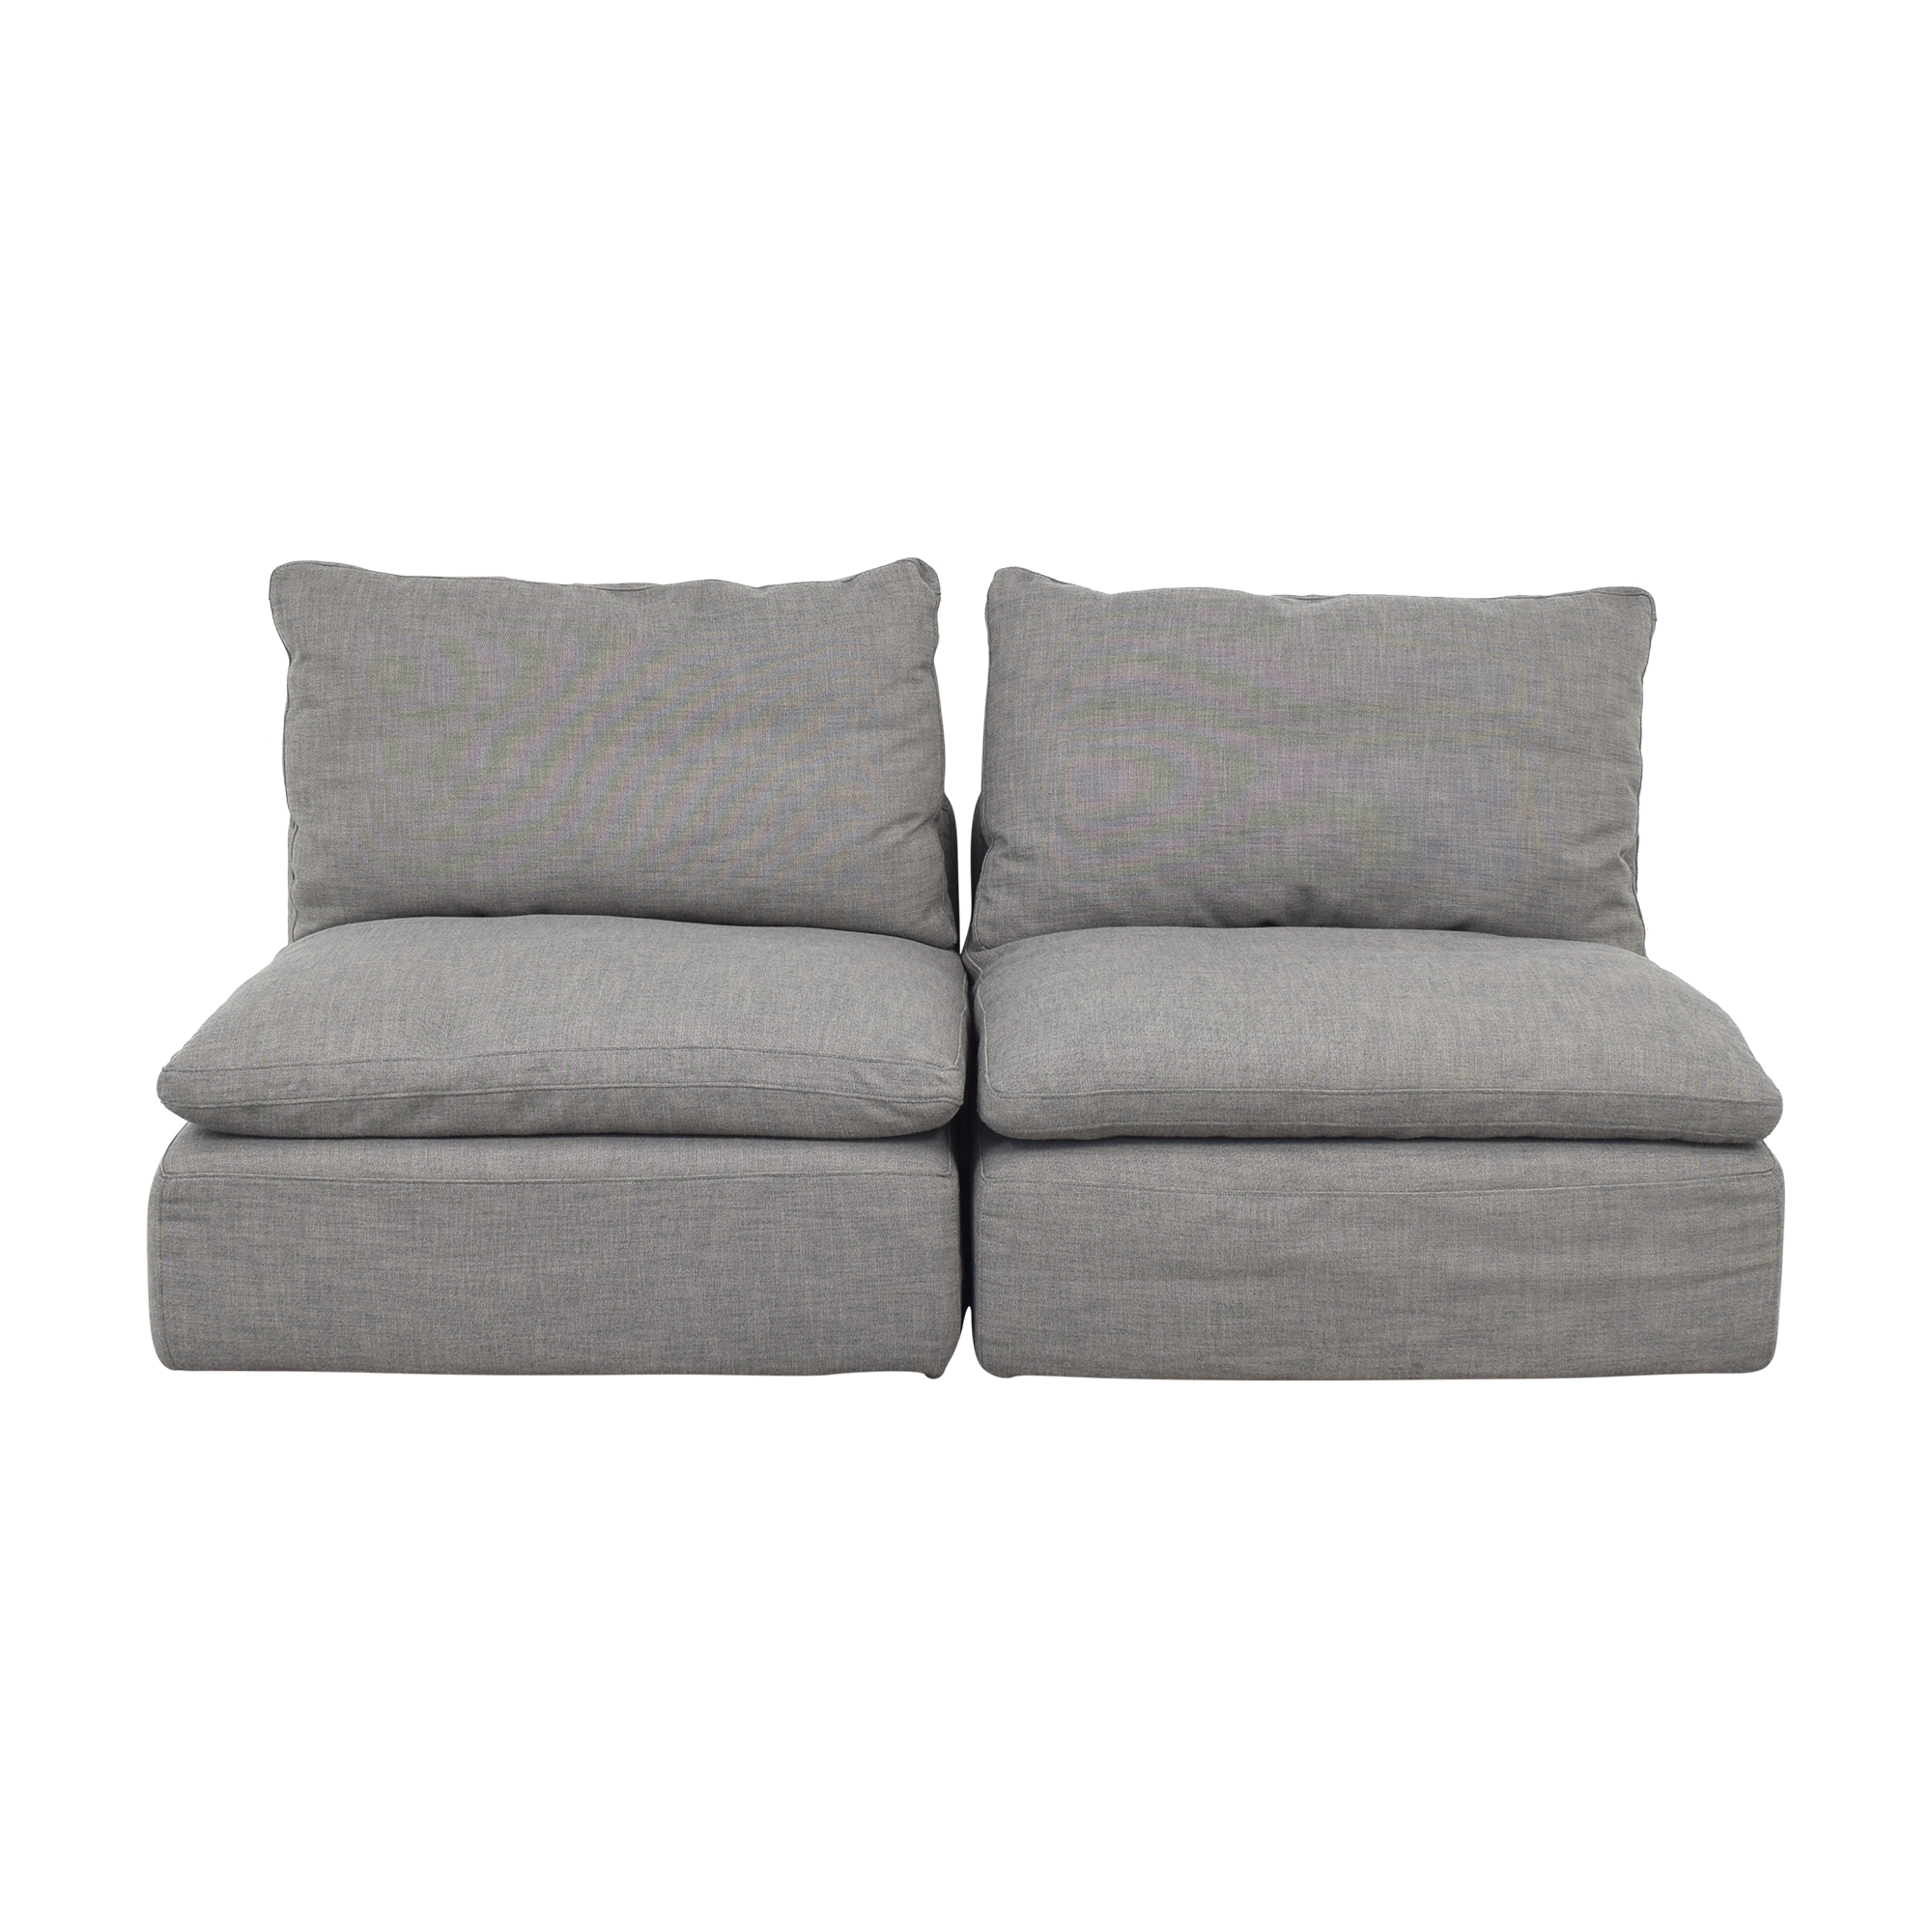 shop Restoration Hardware Restoration Hardware Cloud Sectional Sofa online